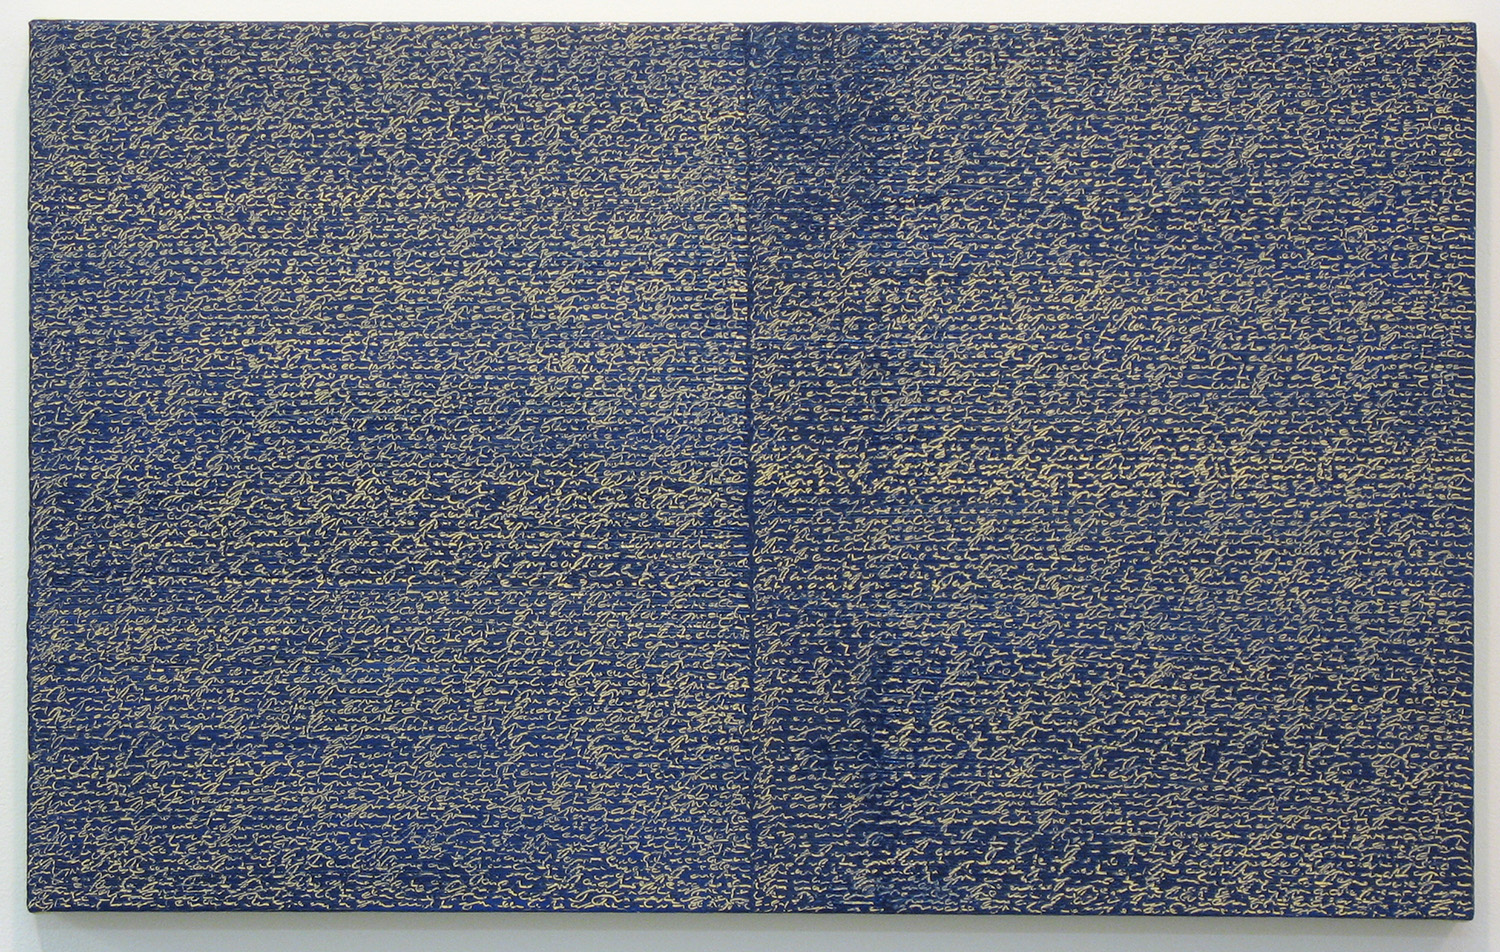 Open Book -yellow-blue-<br>oil and amber on canvas over panel, 37 x 60 cm, 2008